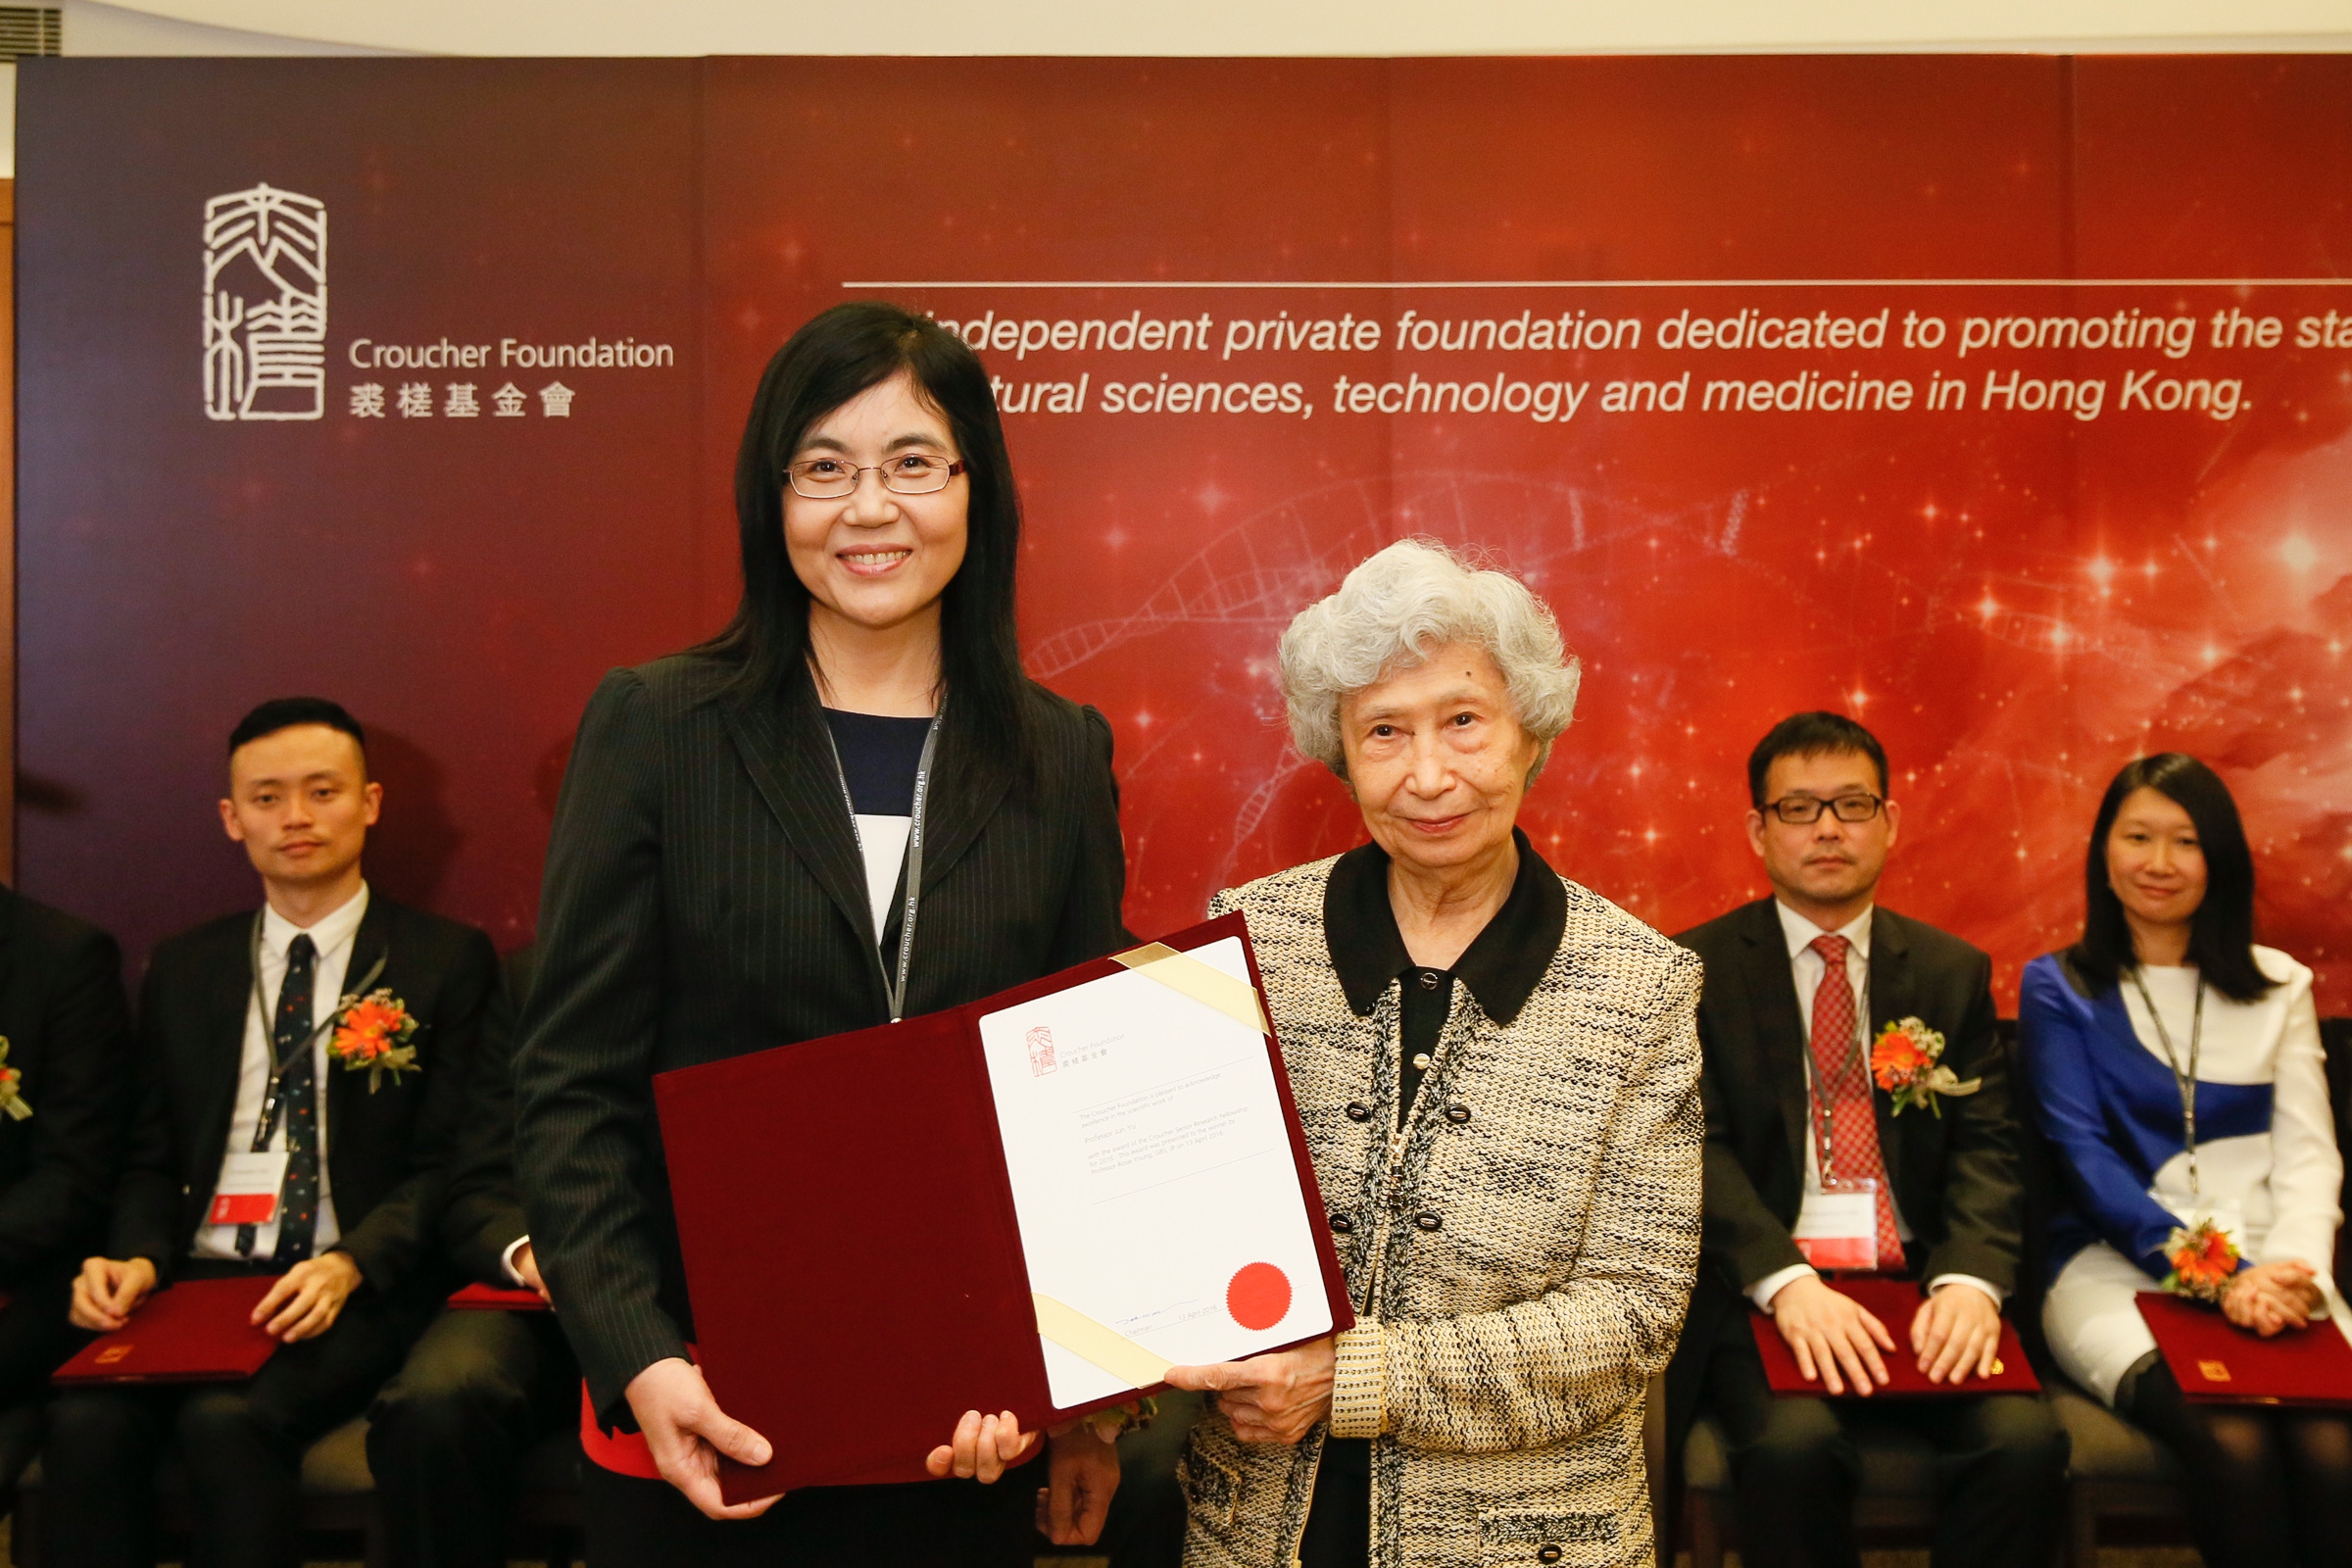 Prof Rosie Young presents the award of Senior Research Fellowship to Prof Jun Yu.